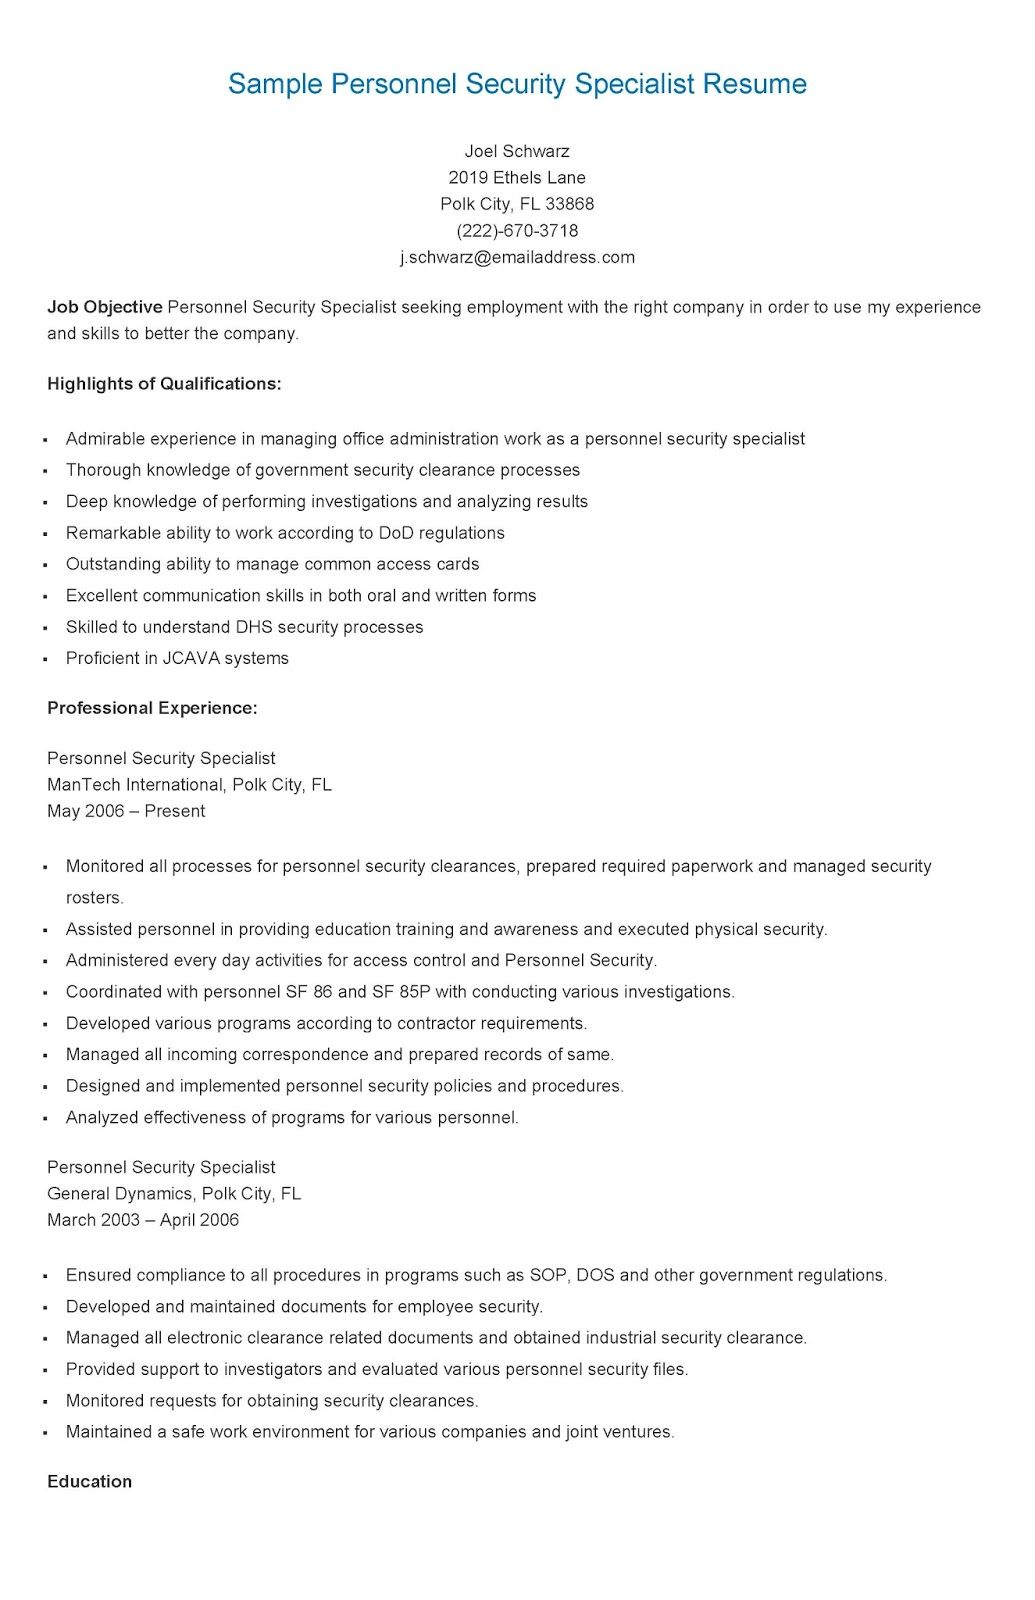 Sample Personnel Security Specialist Resume  Resame